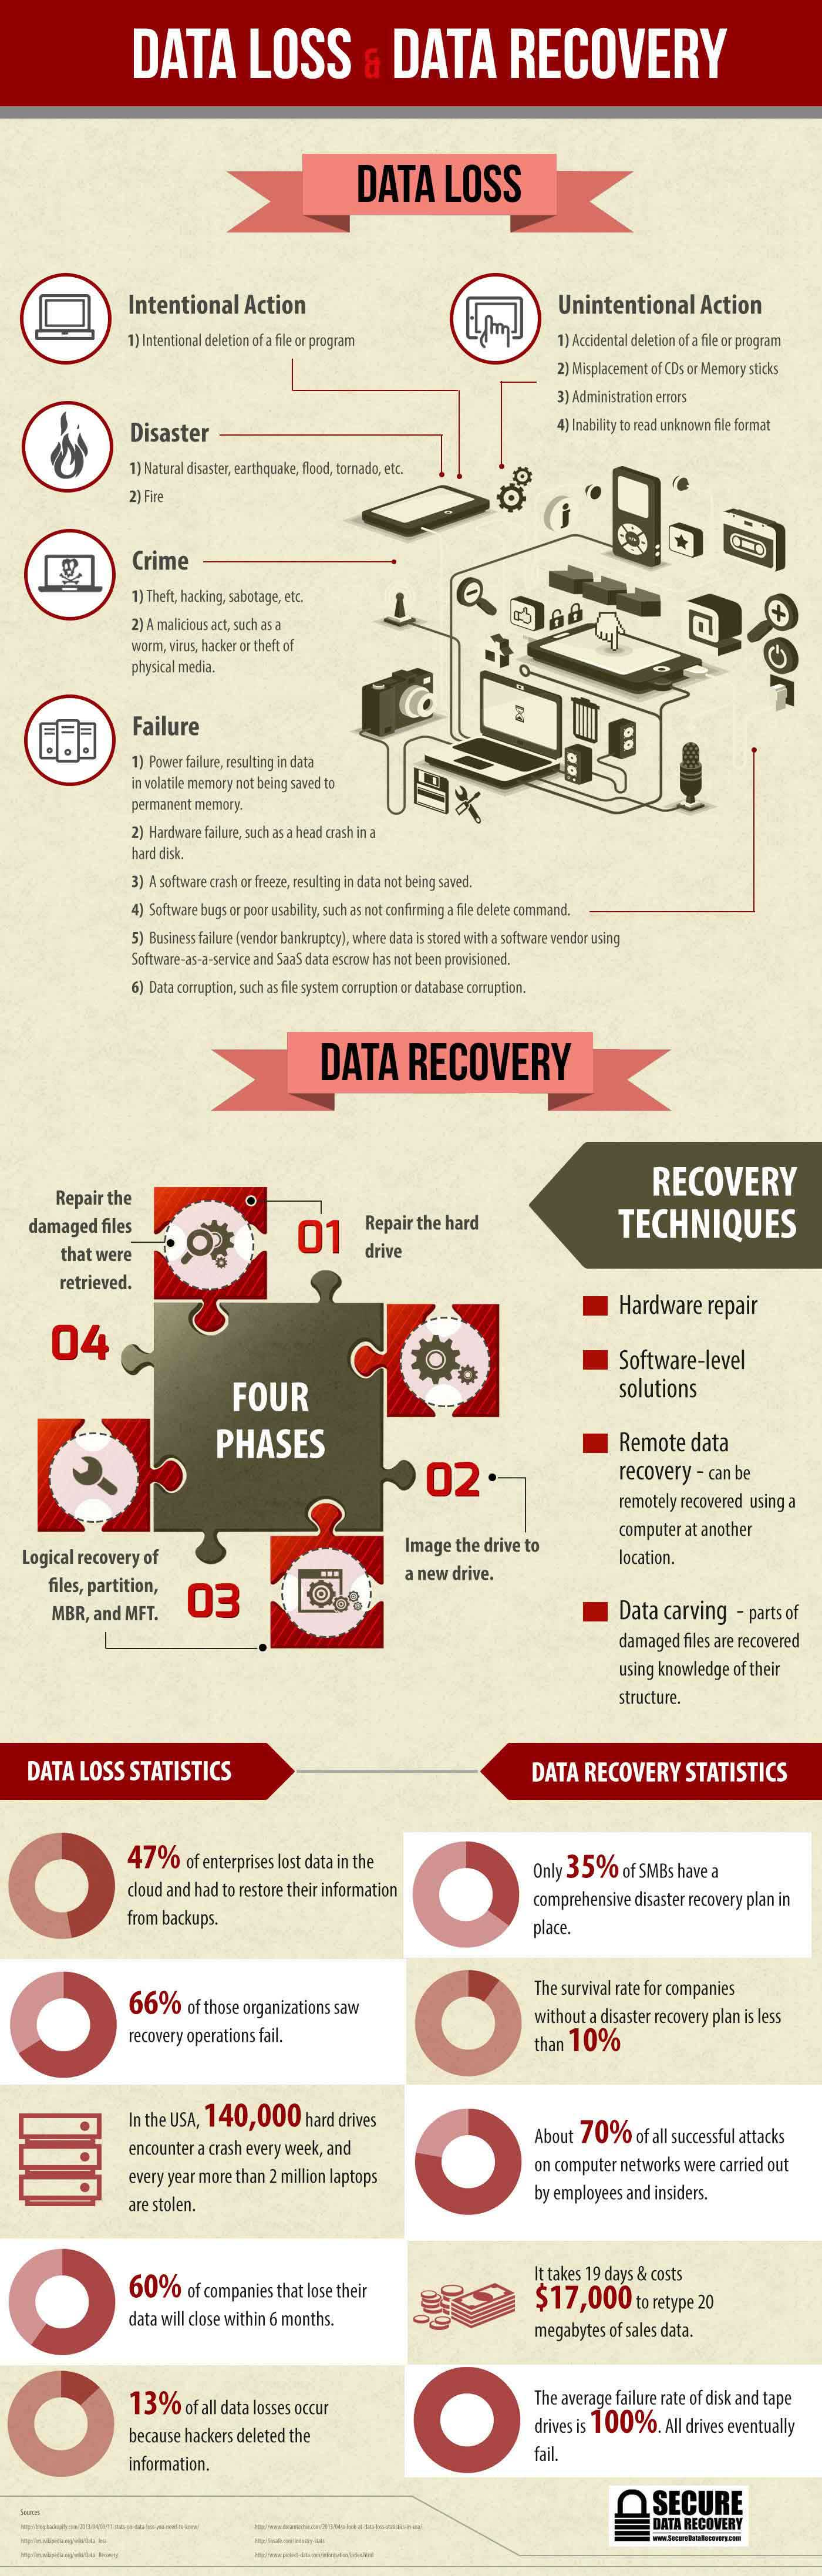 Data Loss and Recovery